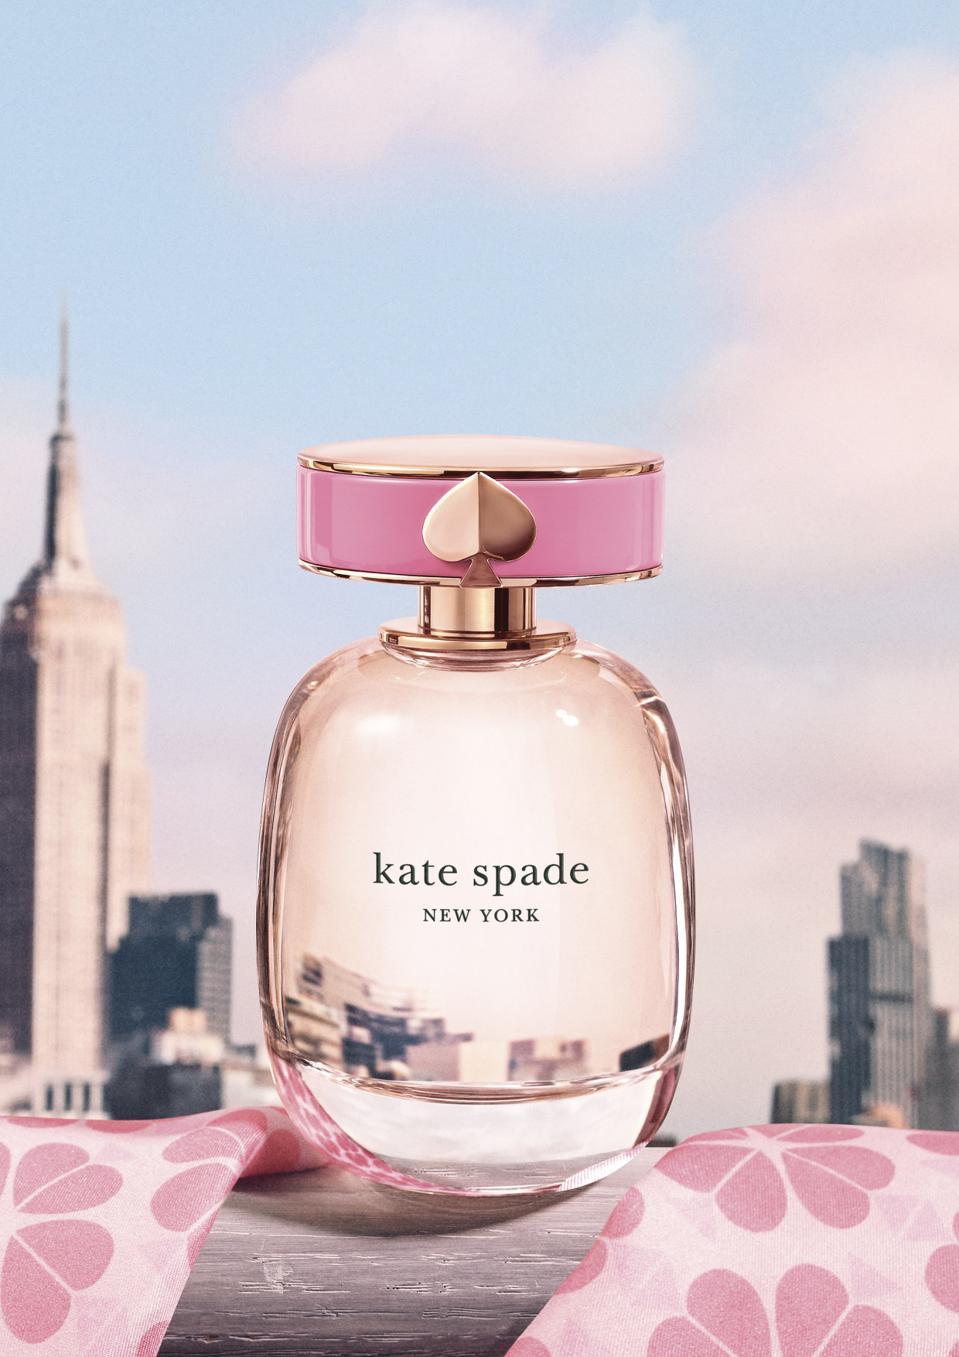 Kate Spade New York is a feminine fragrance, full of the energy and grace the brand embodies.